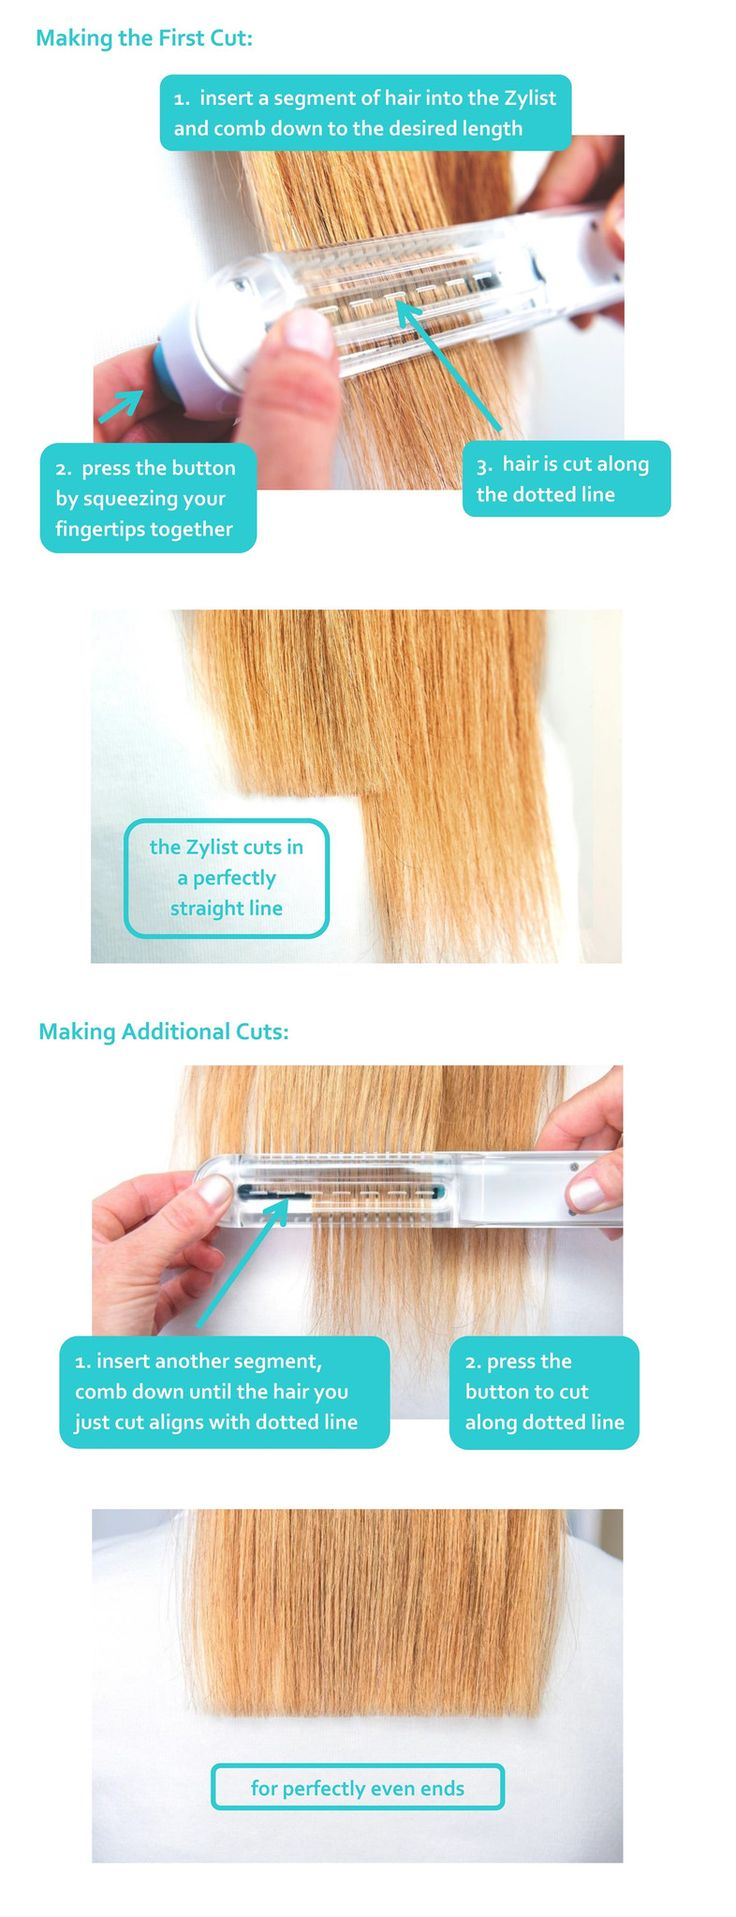 Zylist is the first trimmer designed for longer hairstyles. Use it for trims between salon cuts, bang trims, kids cuts and creating layers. remove split ends.